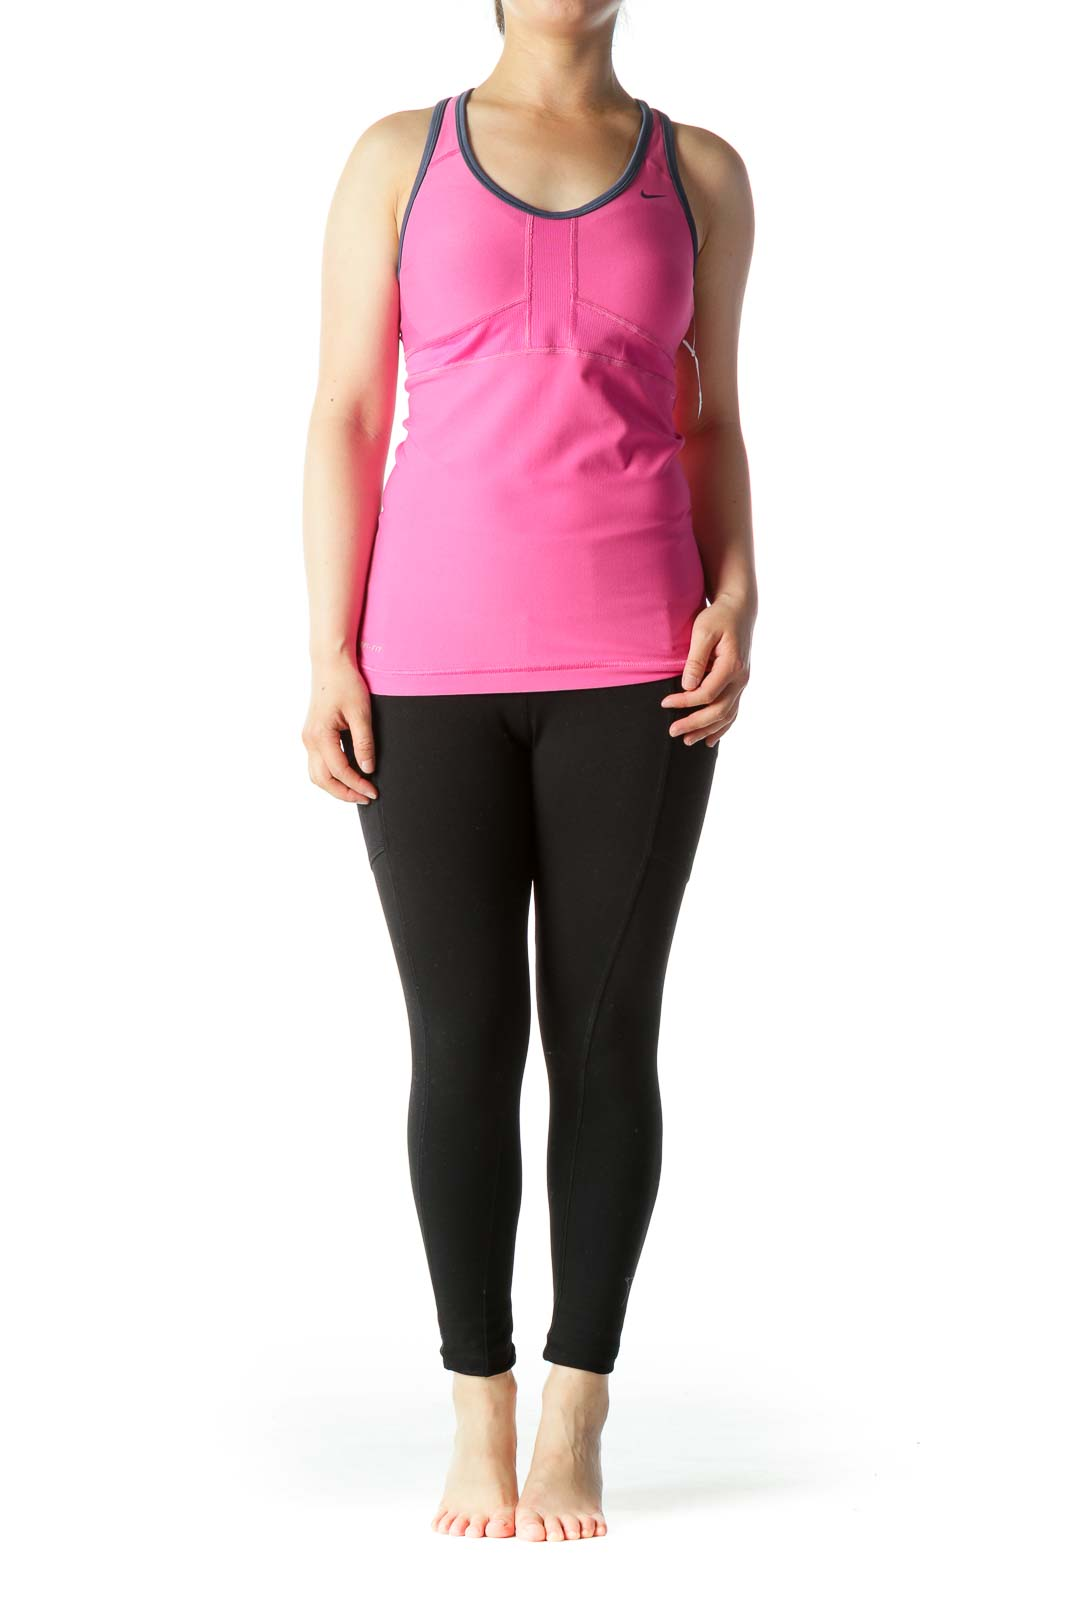 Pink Blue Piping Stretch Sports Top with Built-in Bra